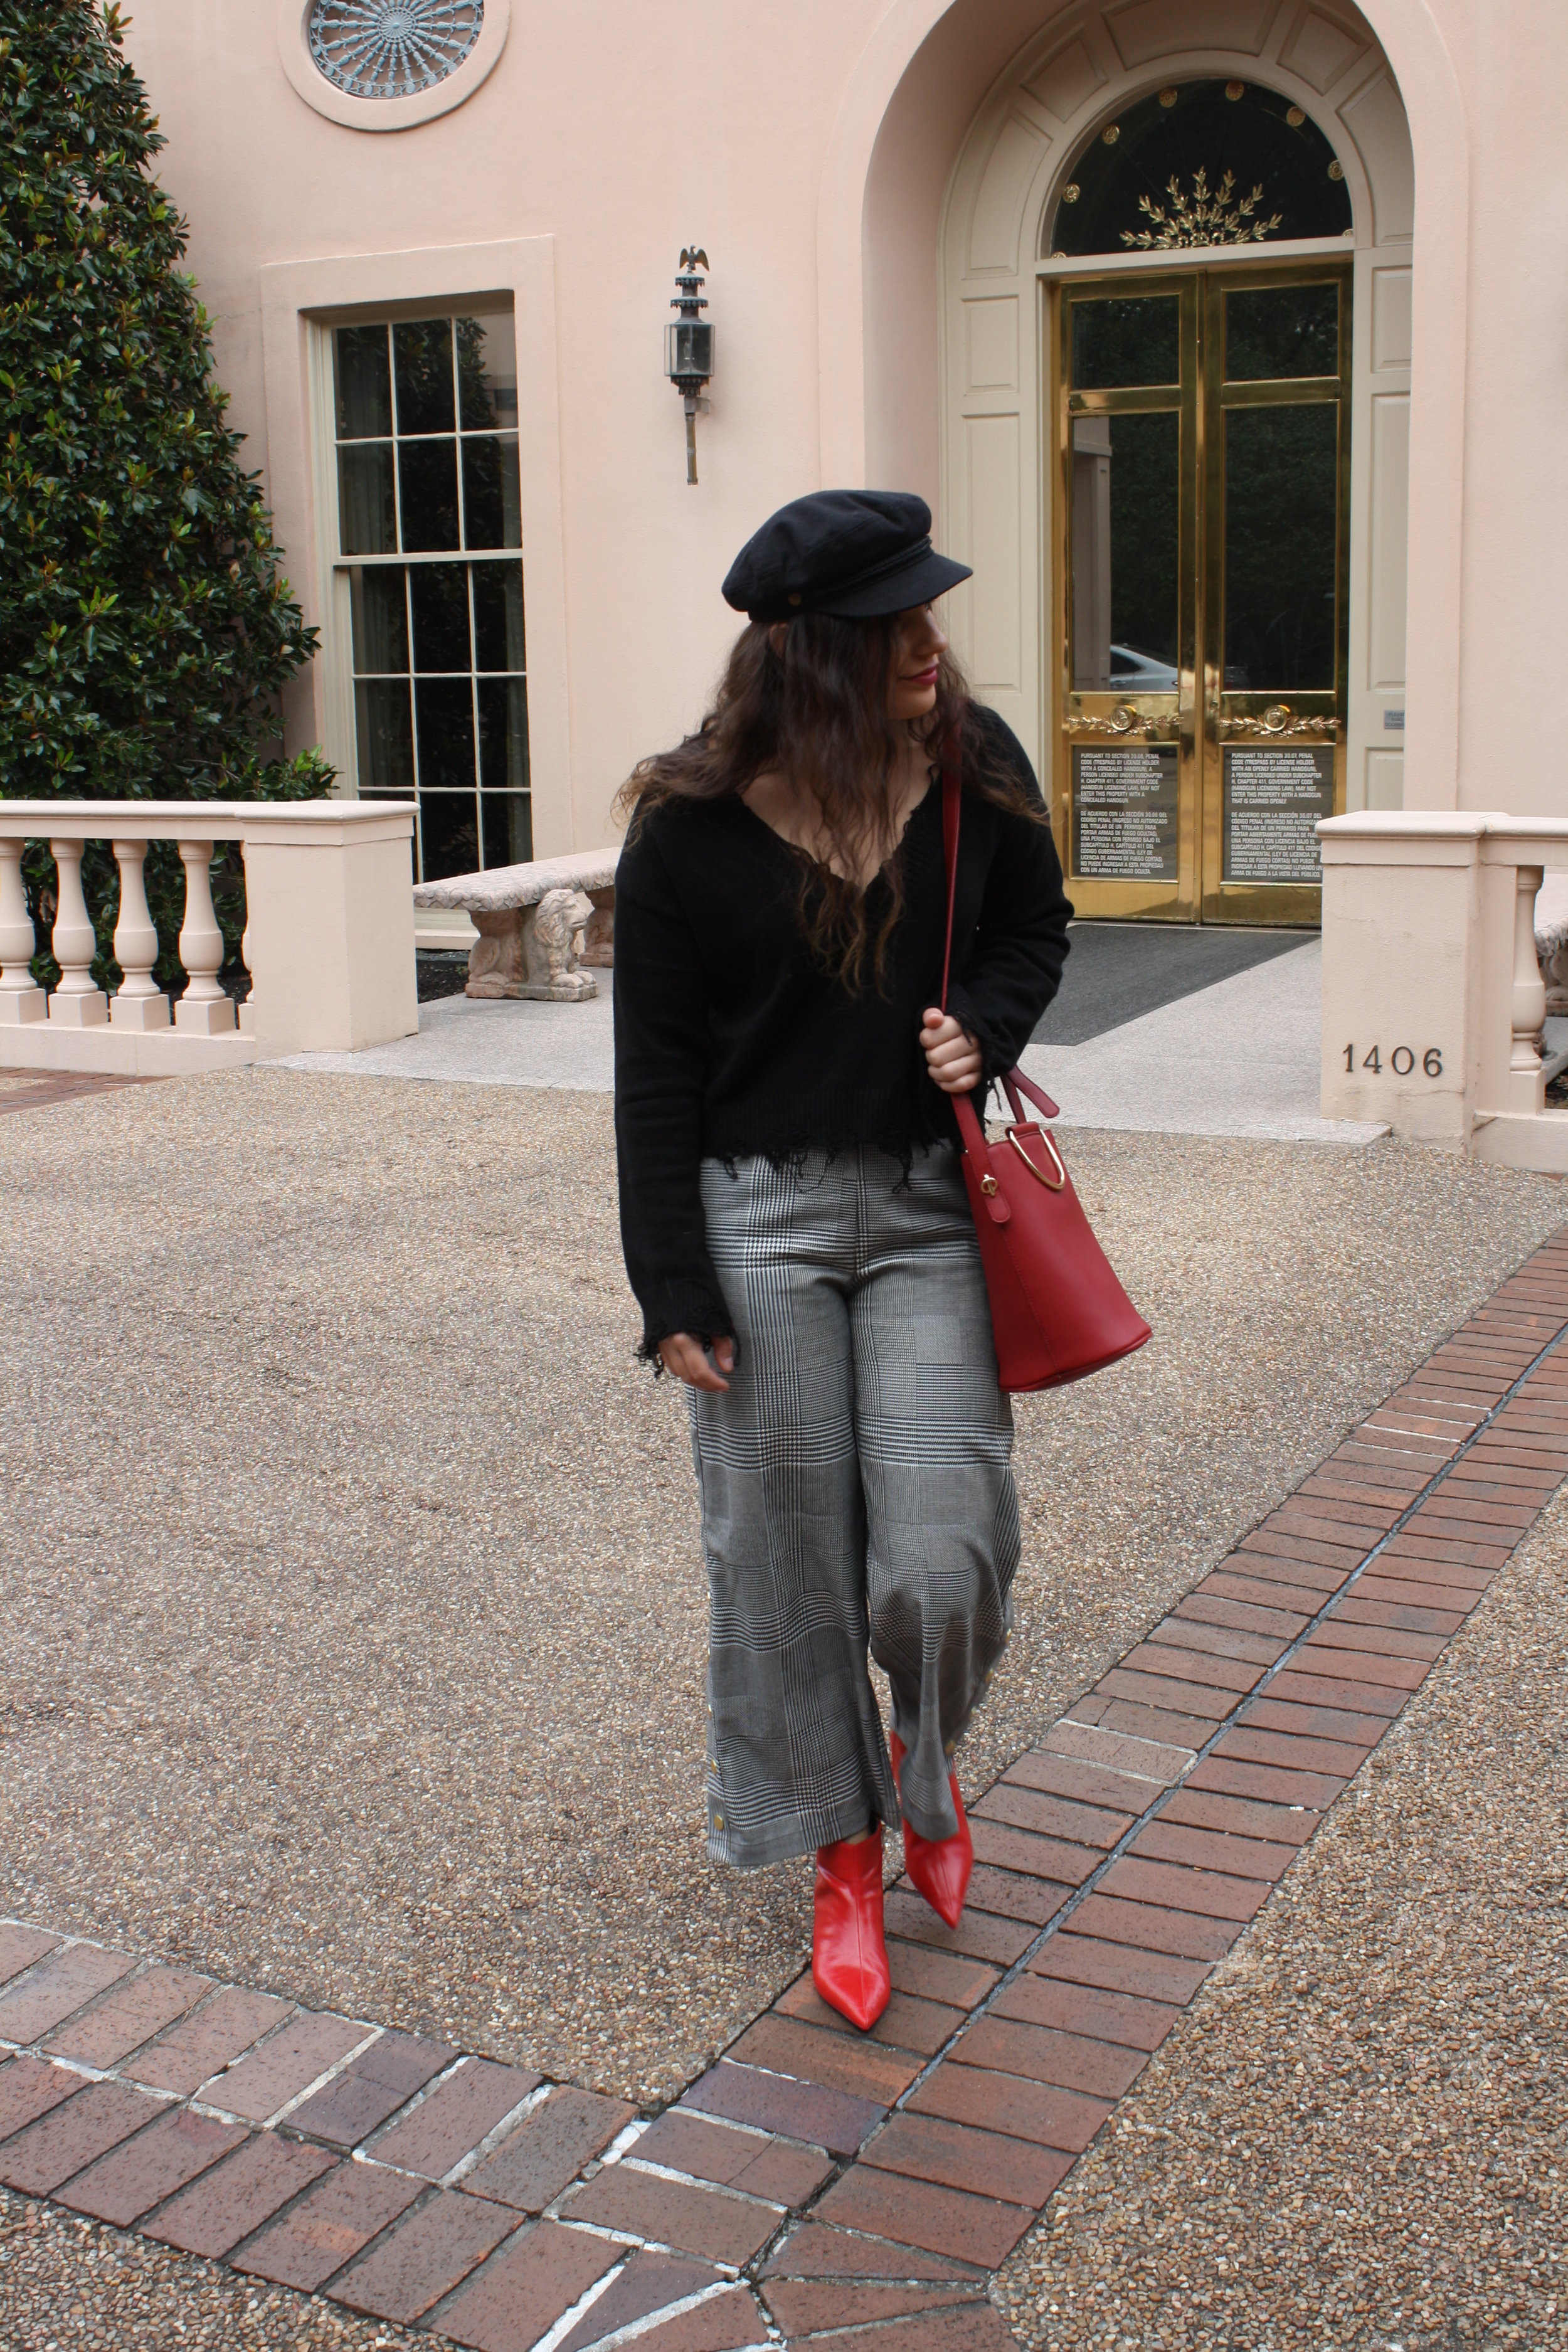 Sweater: Honey Punch; Pants: Target Who What Wear Collection; Shoes: Zara; Hat: Brixton; Purse: Target Who What Wear Collection